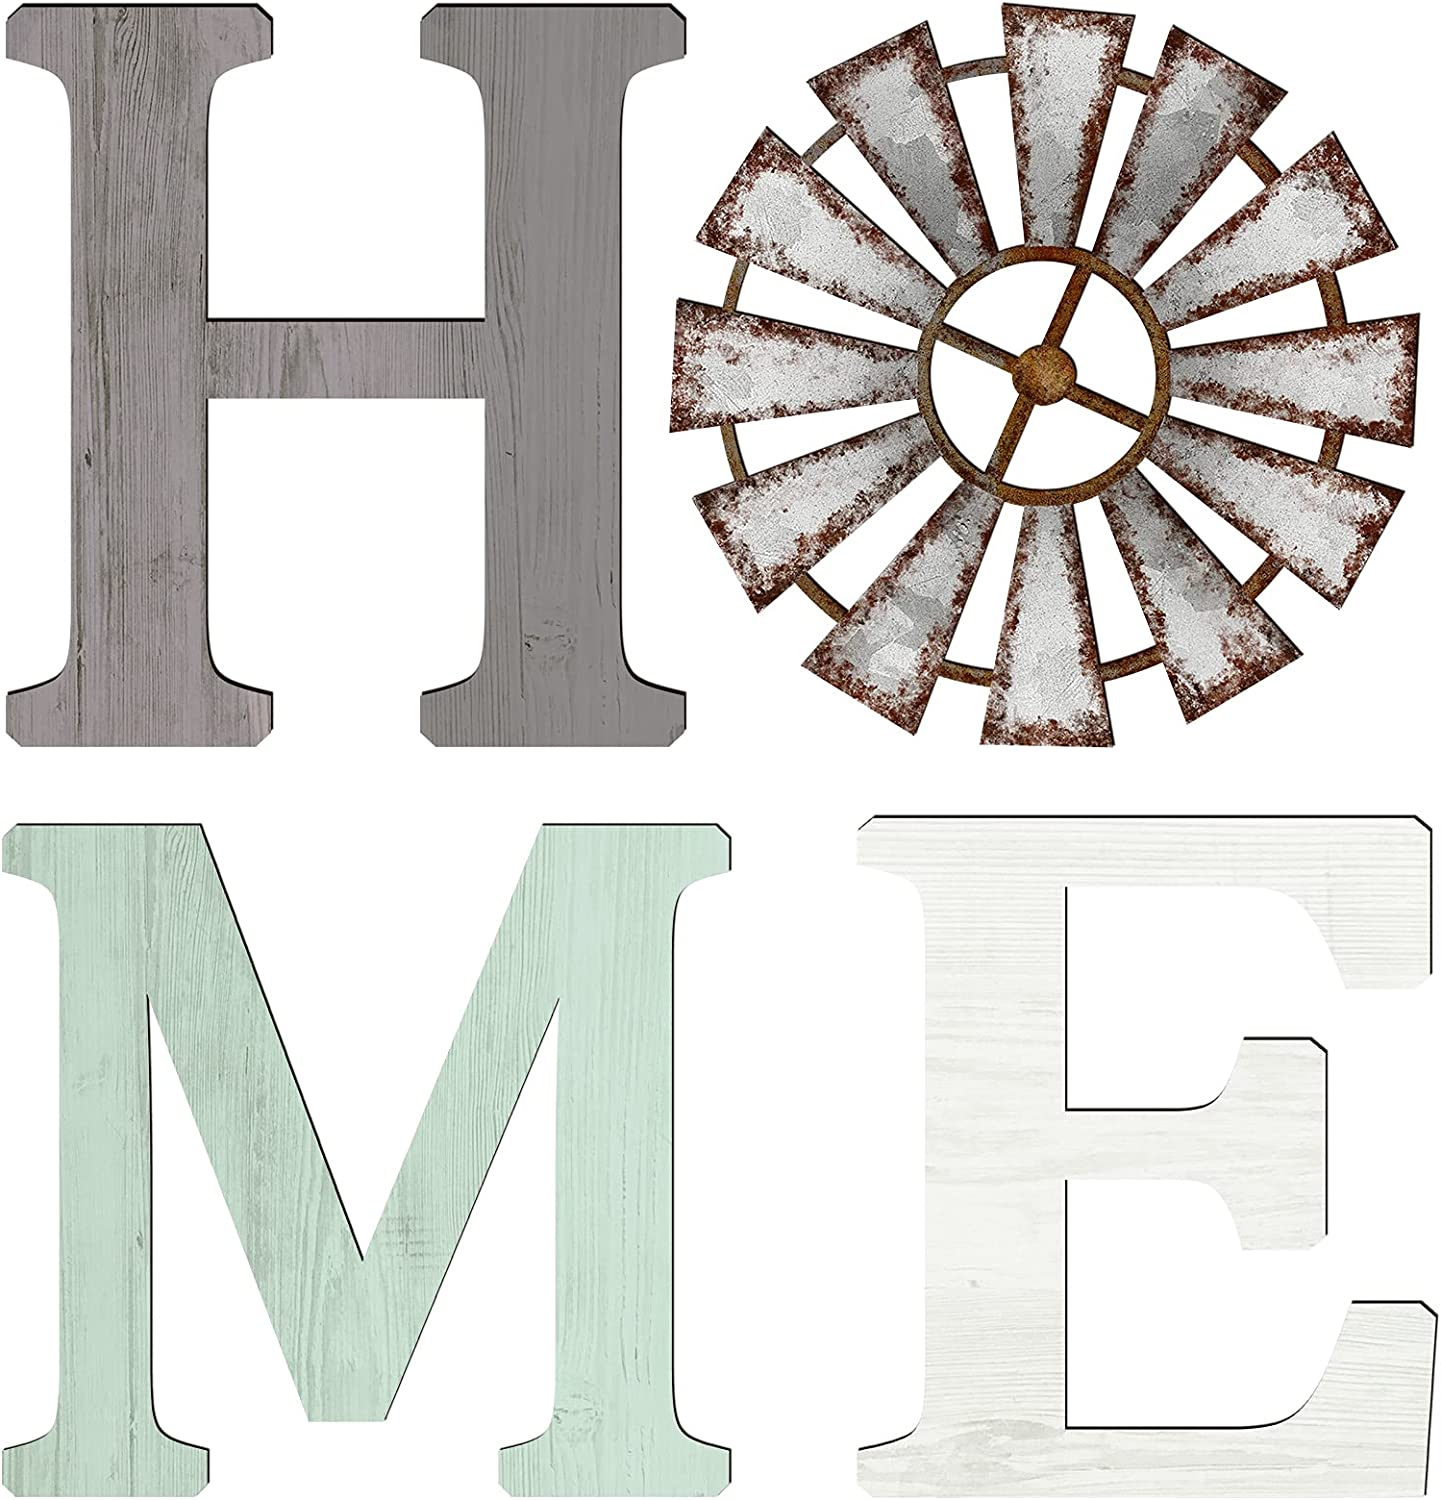 4 Pieces Rustic Home Letters Decor Wooden Home Sign with Windmill Wood Home Wall Decor Home Words Wood Sign Farmhouse Wood Home Wall Art with Adhesive Dots for House (Grey, Light Green, White)